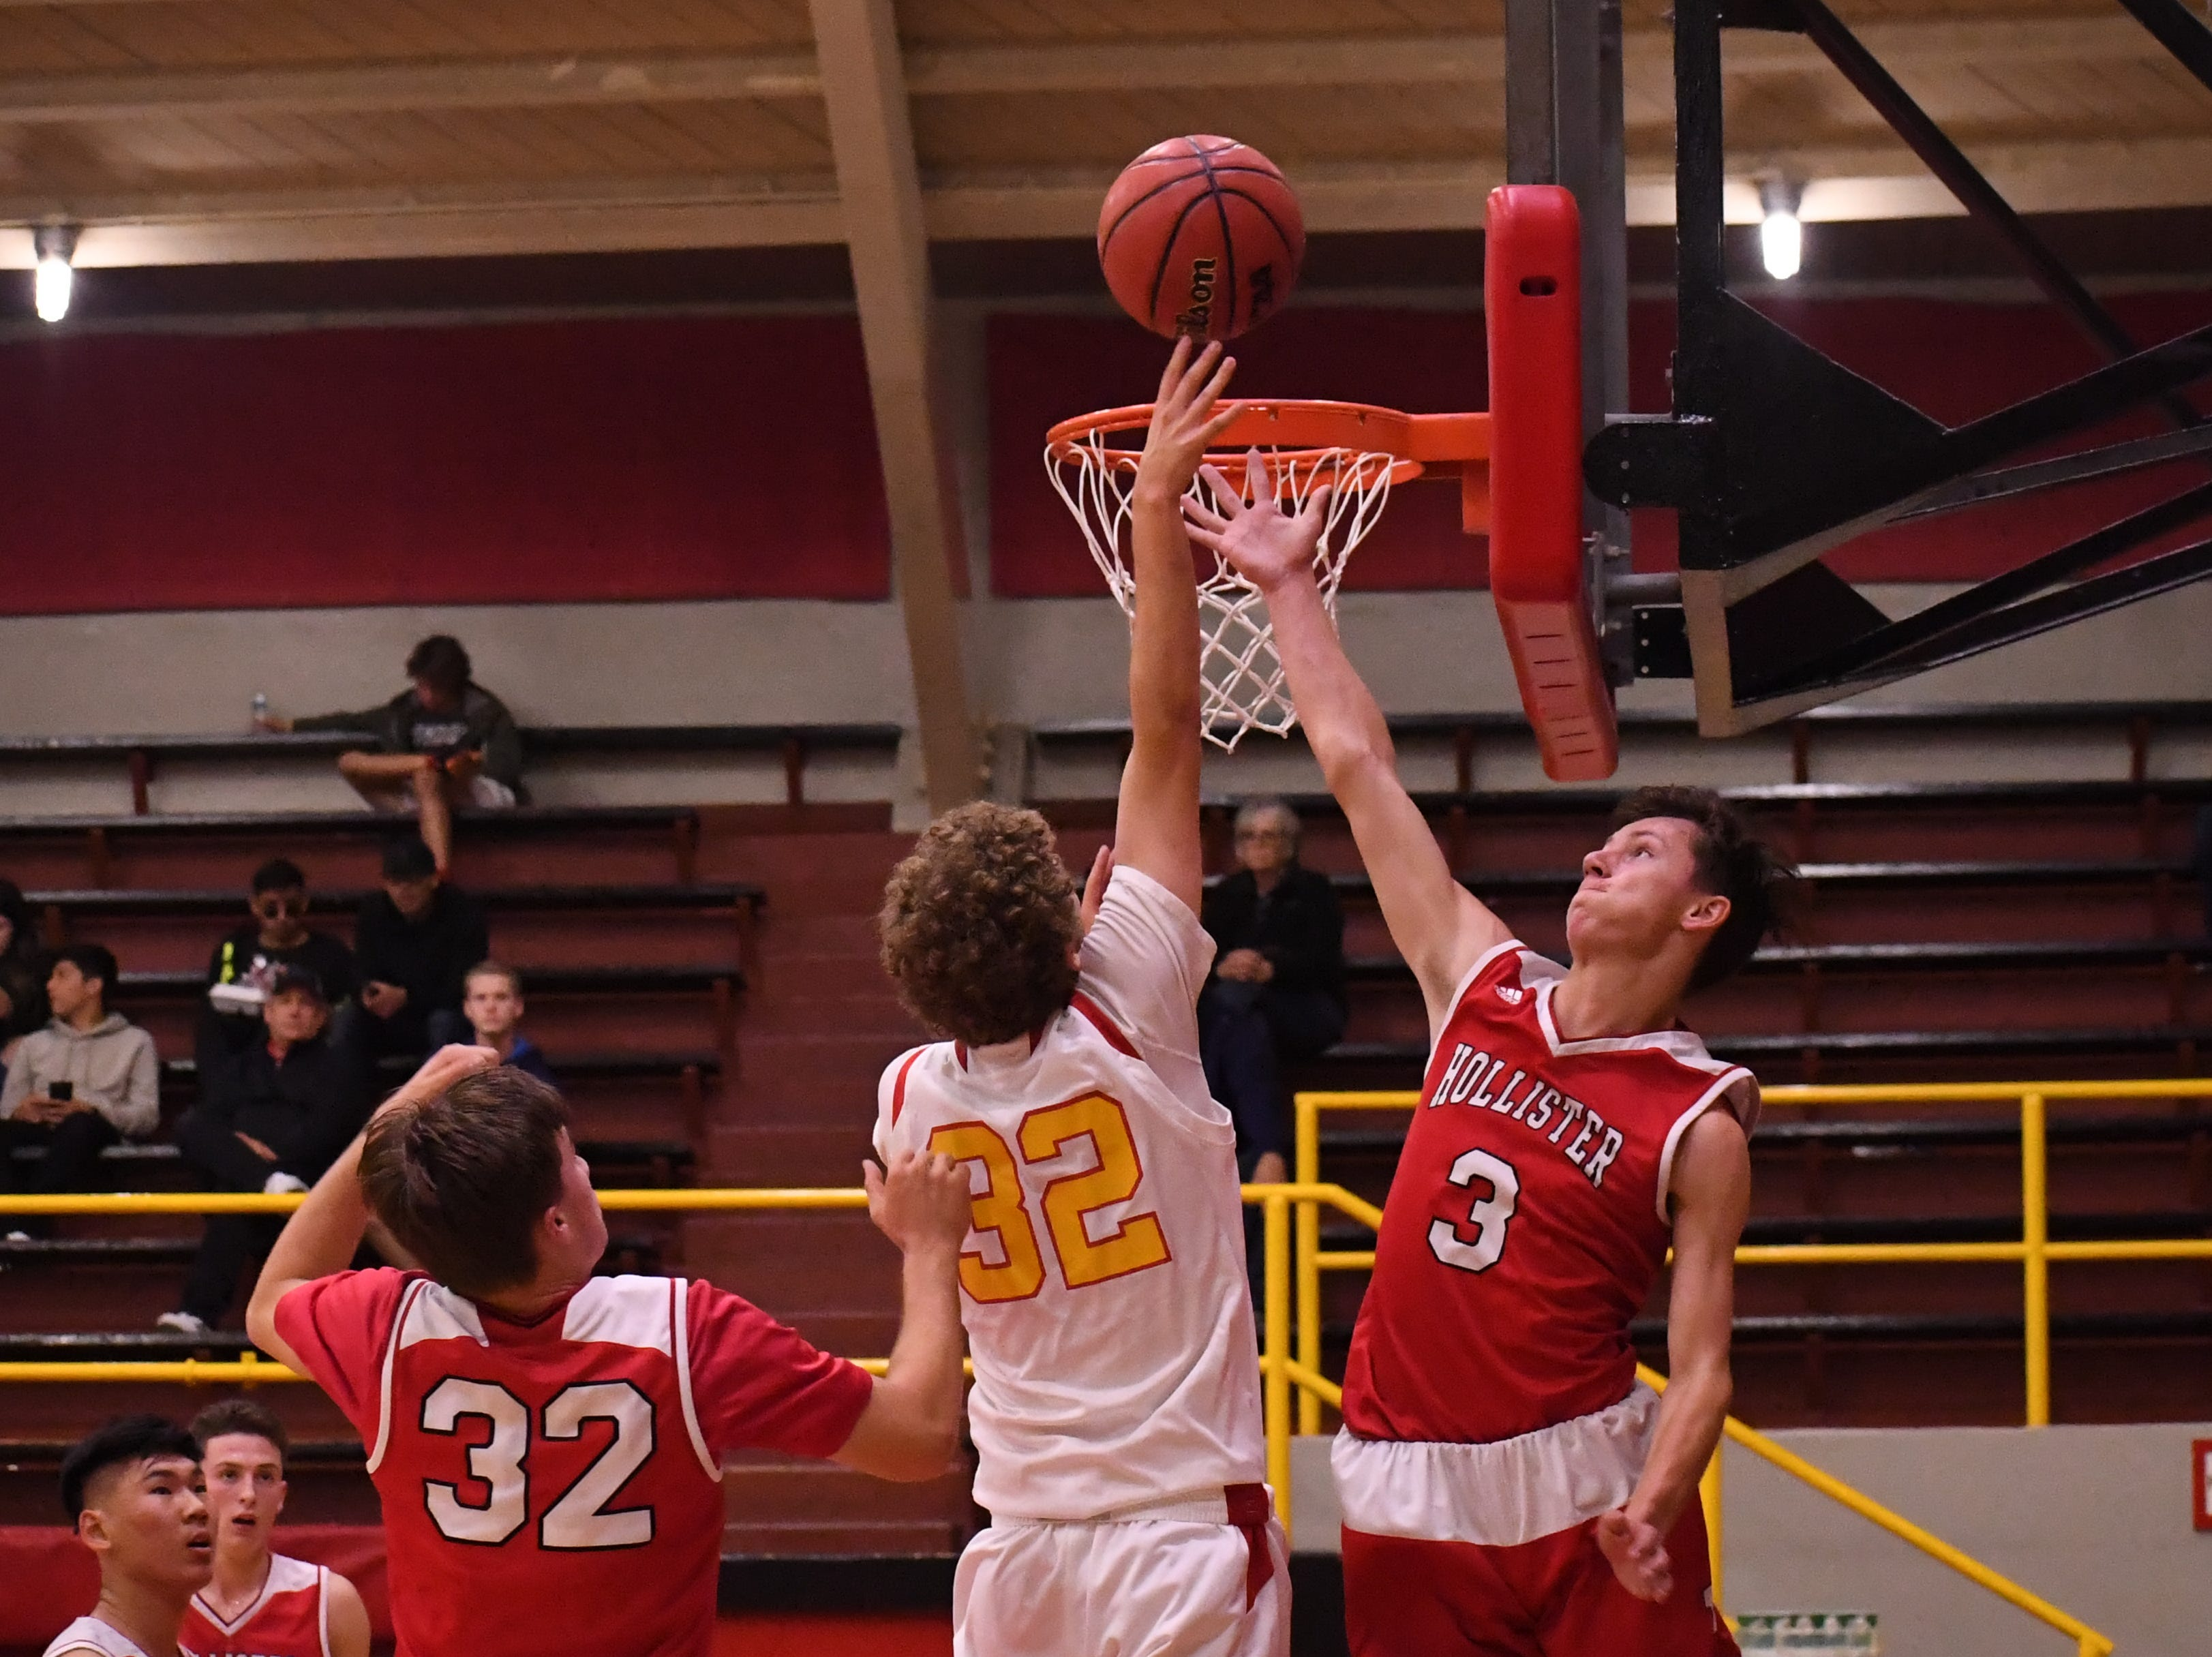 Palma forward Colin Neff (32) lays in a shot above the arm of a San Benito defender.